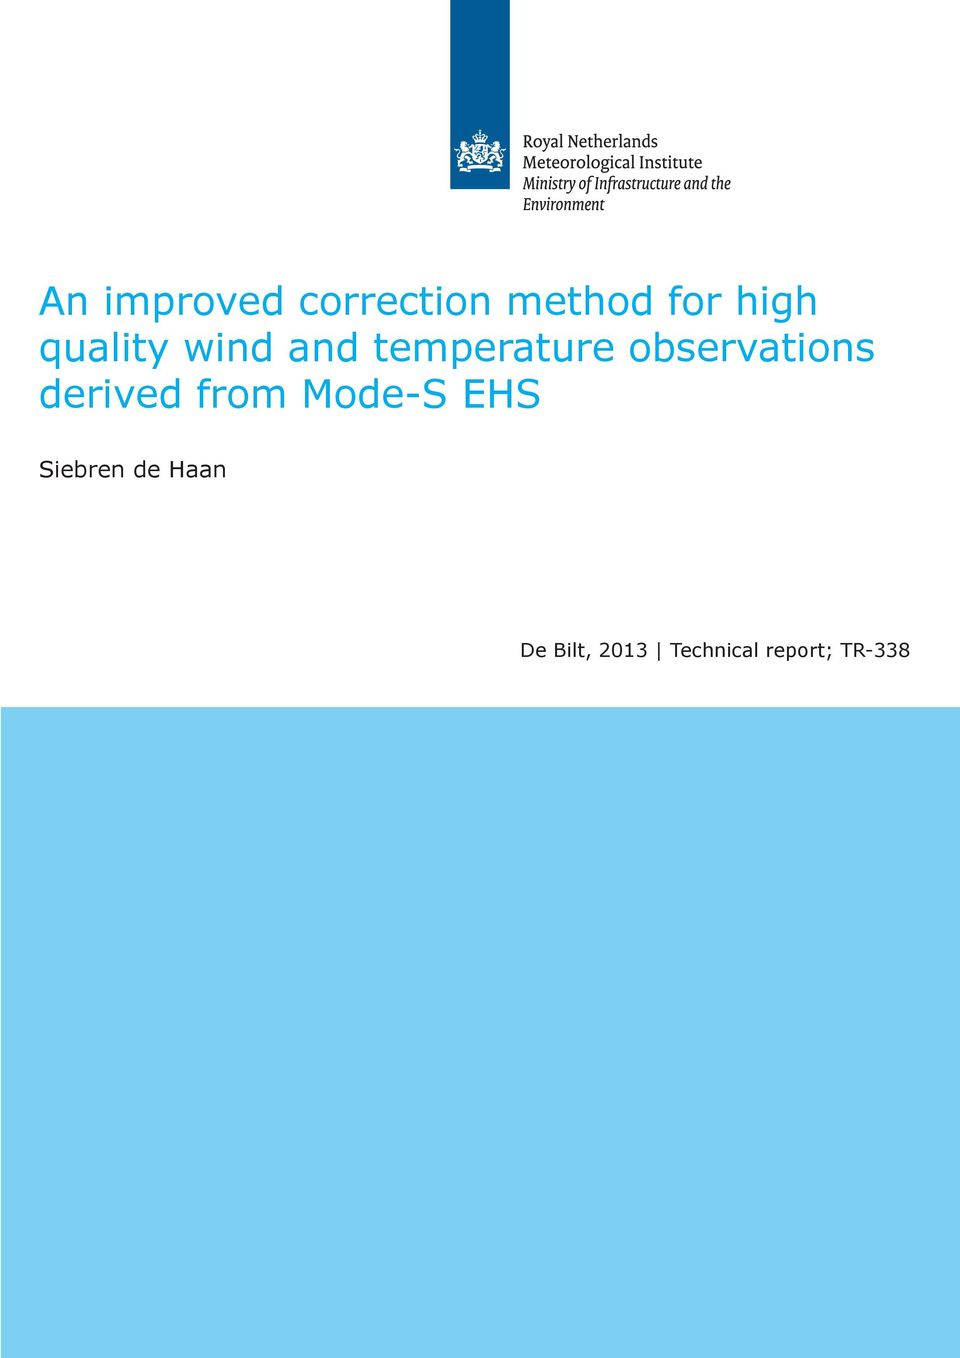 observations derived from Mode-S EHS